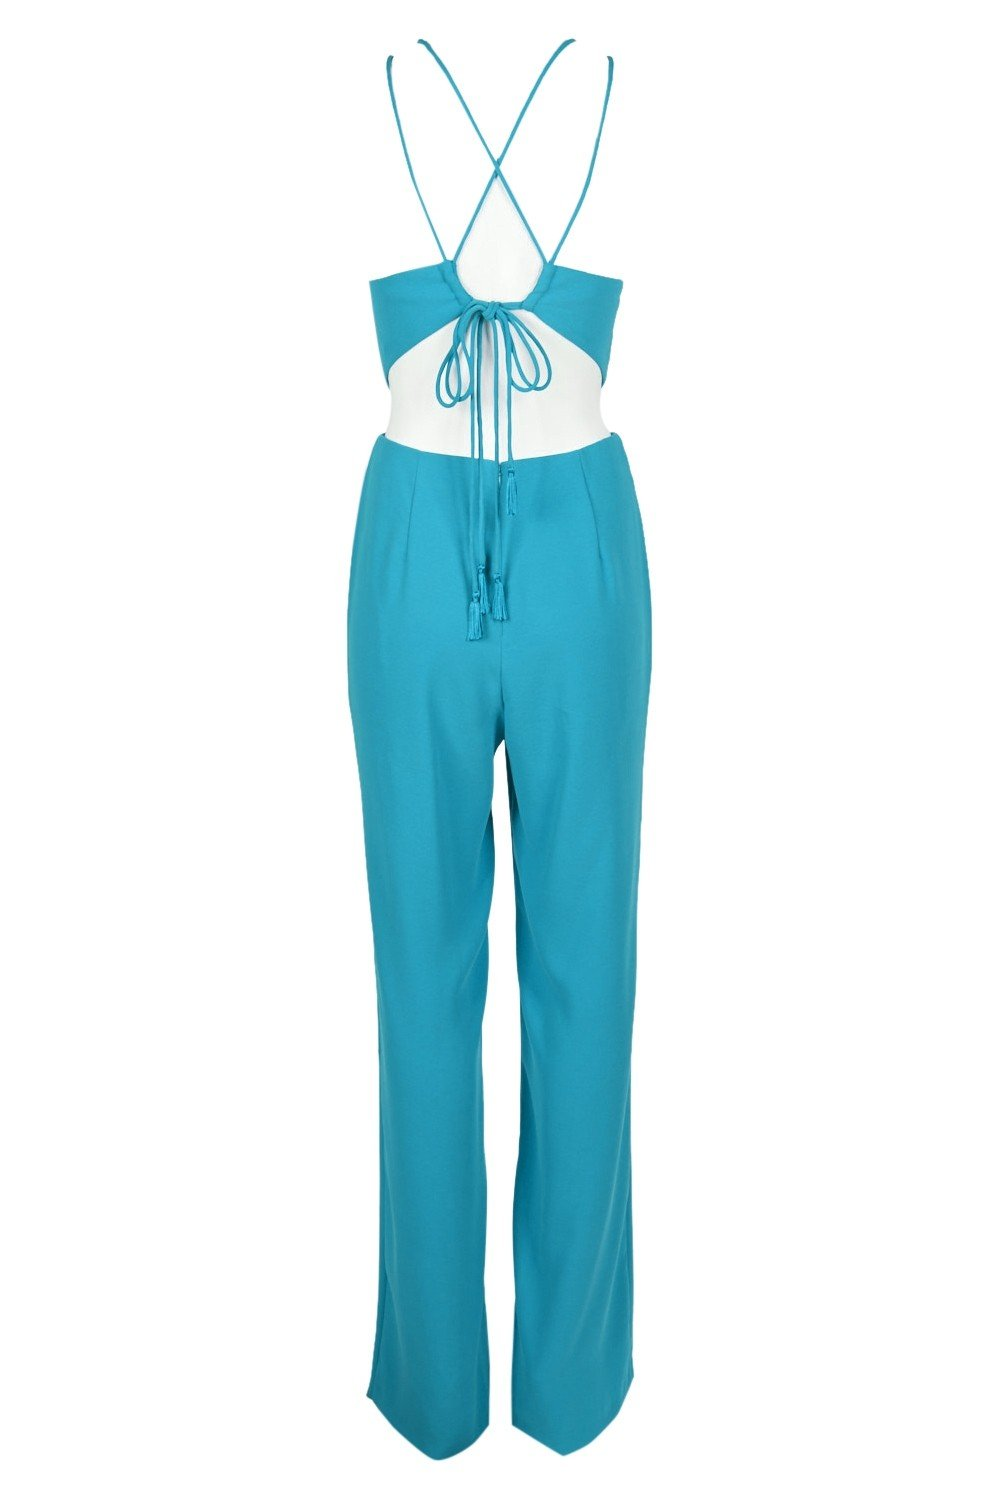 Aidan Mattox - MN1E204053 Sleeveless Halter Jumpsuit With Back Ties In Blue and Green